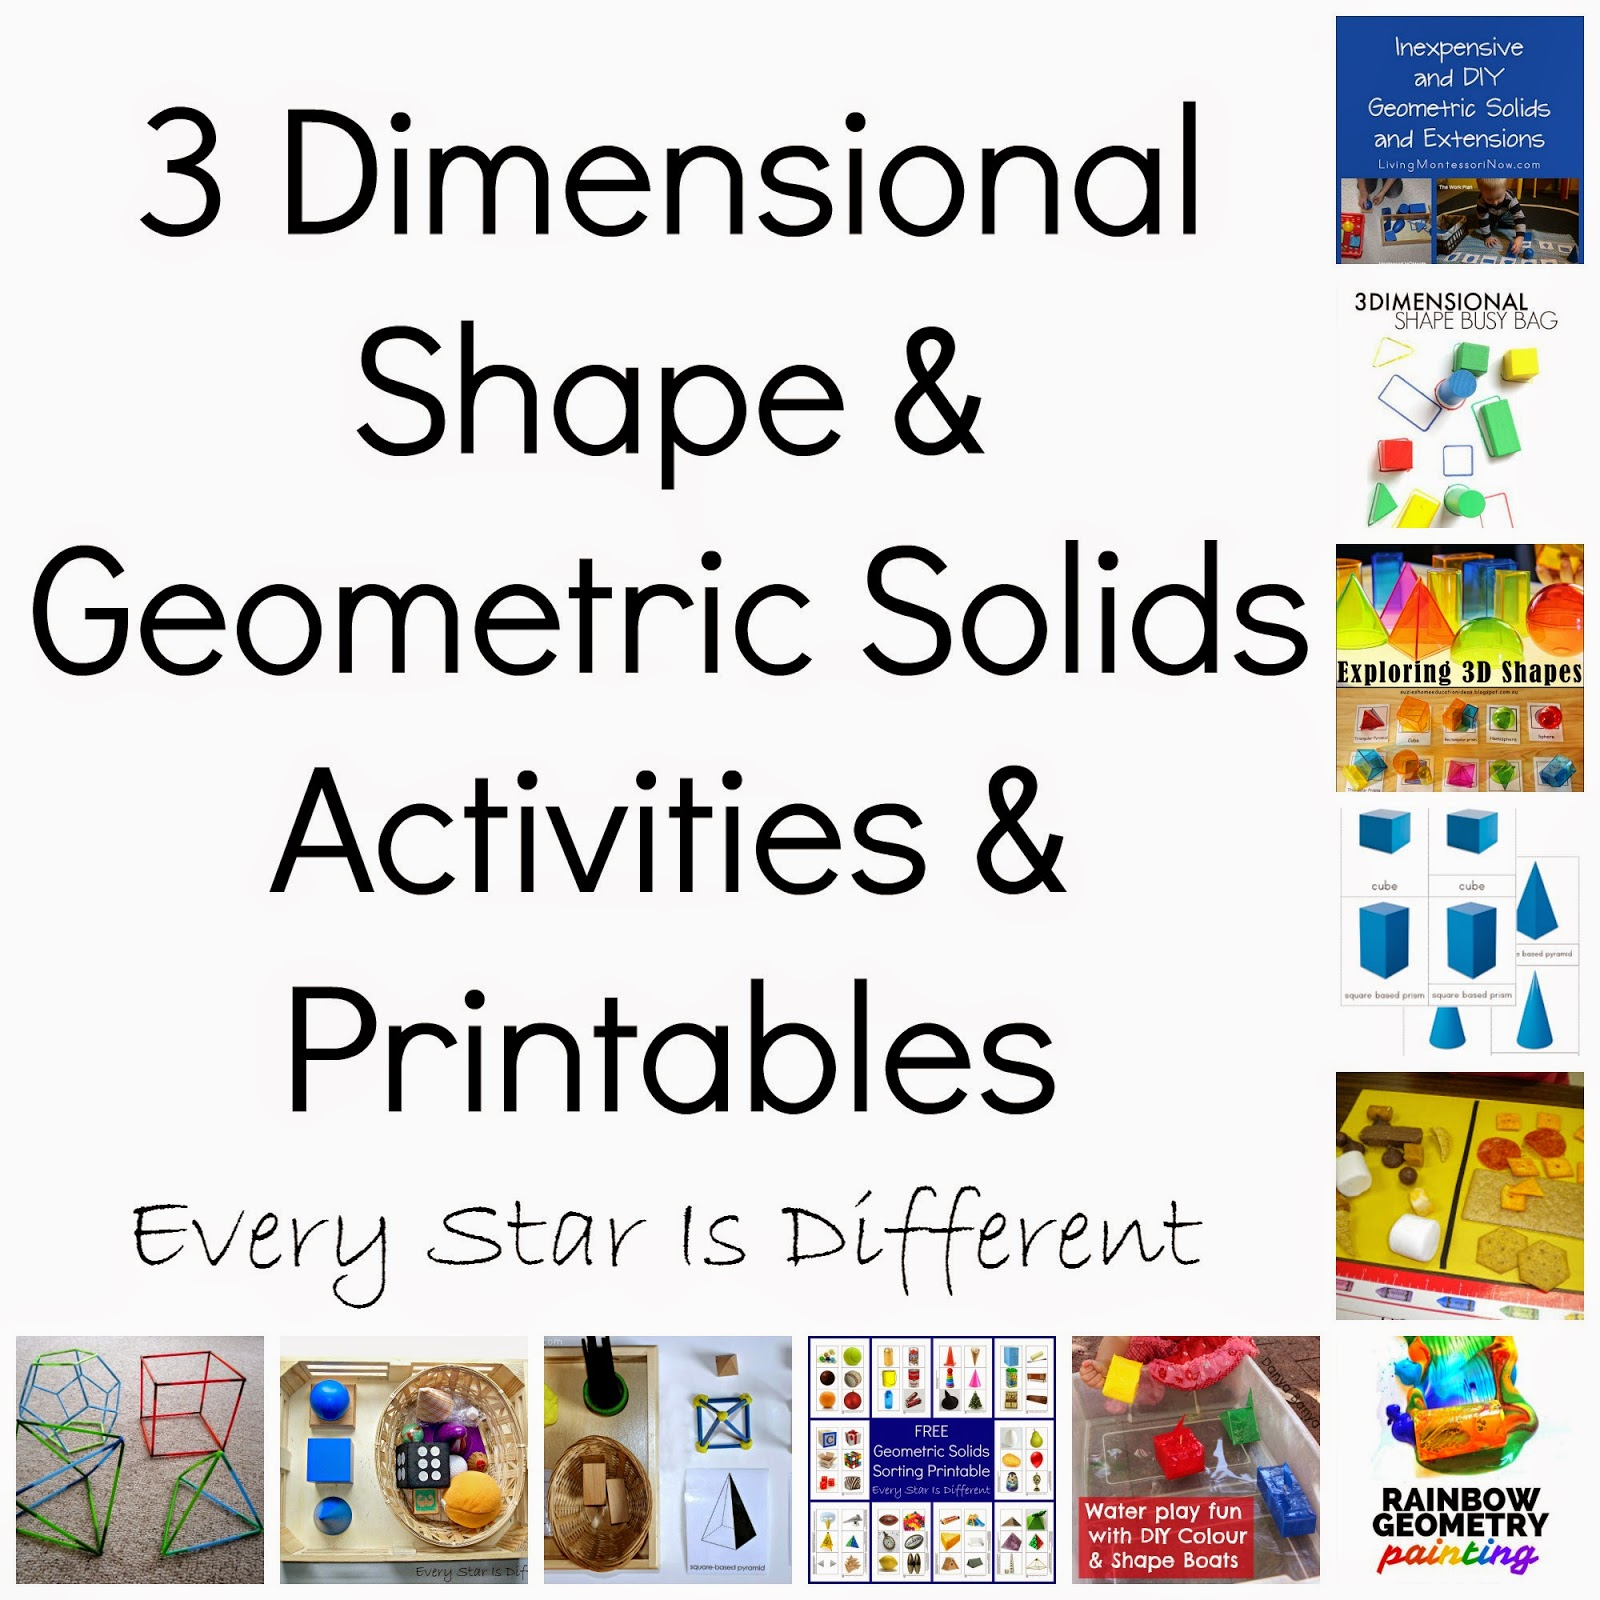 3 Dimensional Shapes Activities & Printables - Every Star Is Different - Free Printable Geometric Shapes